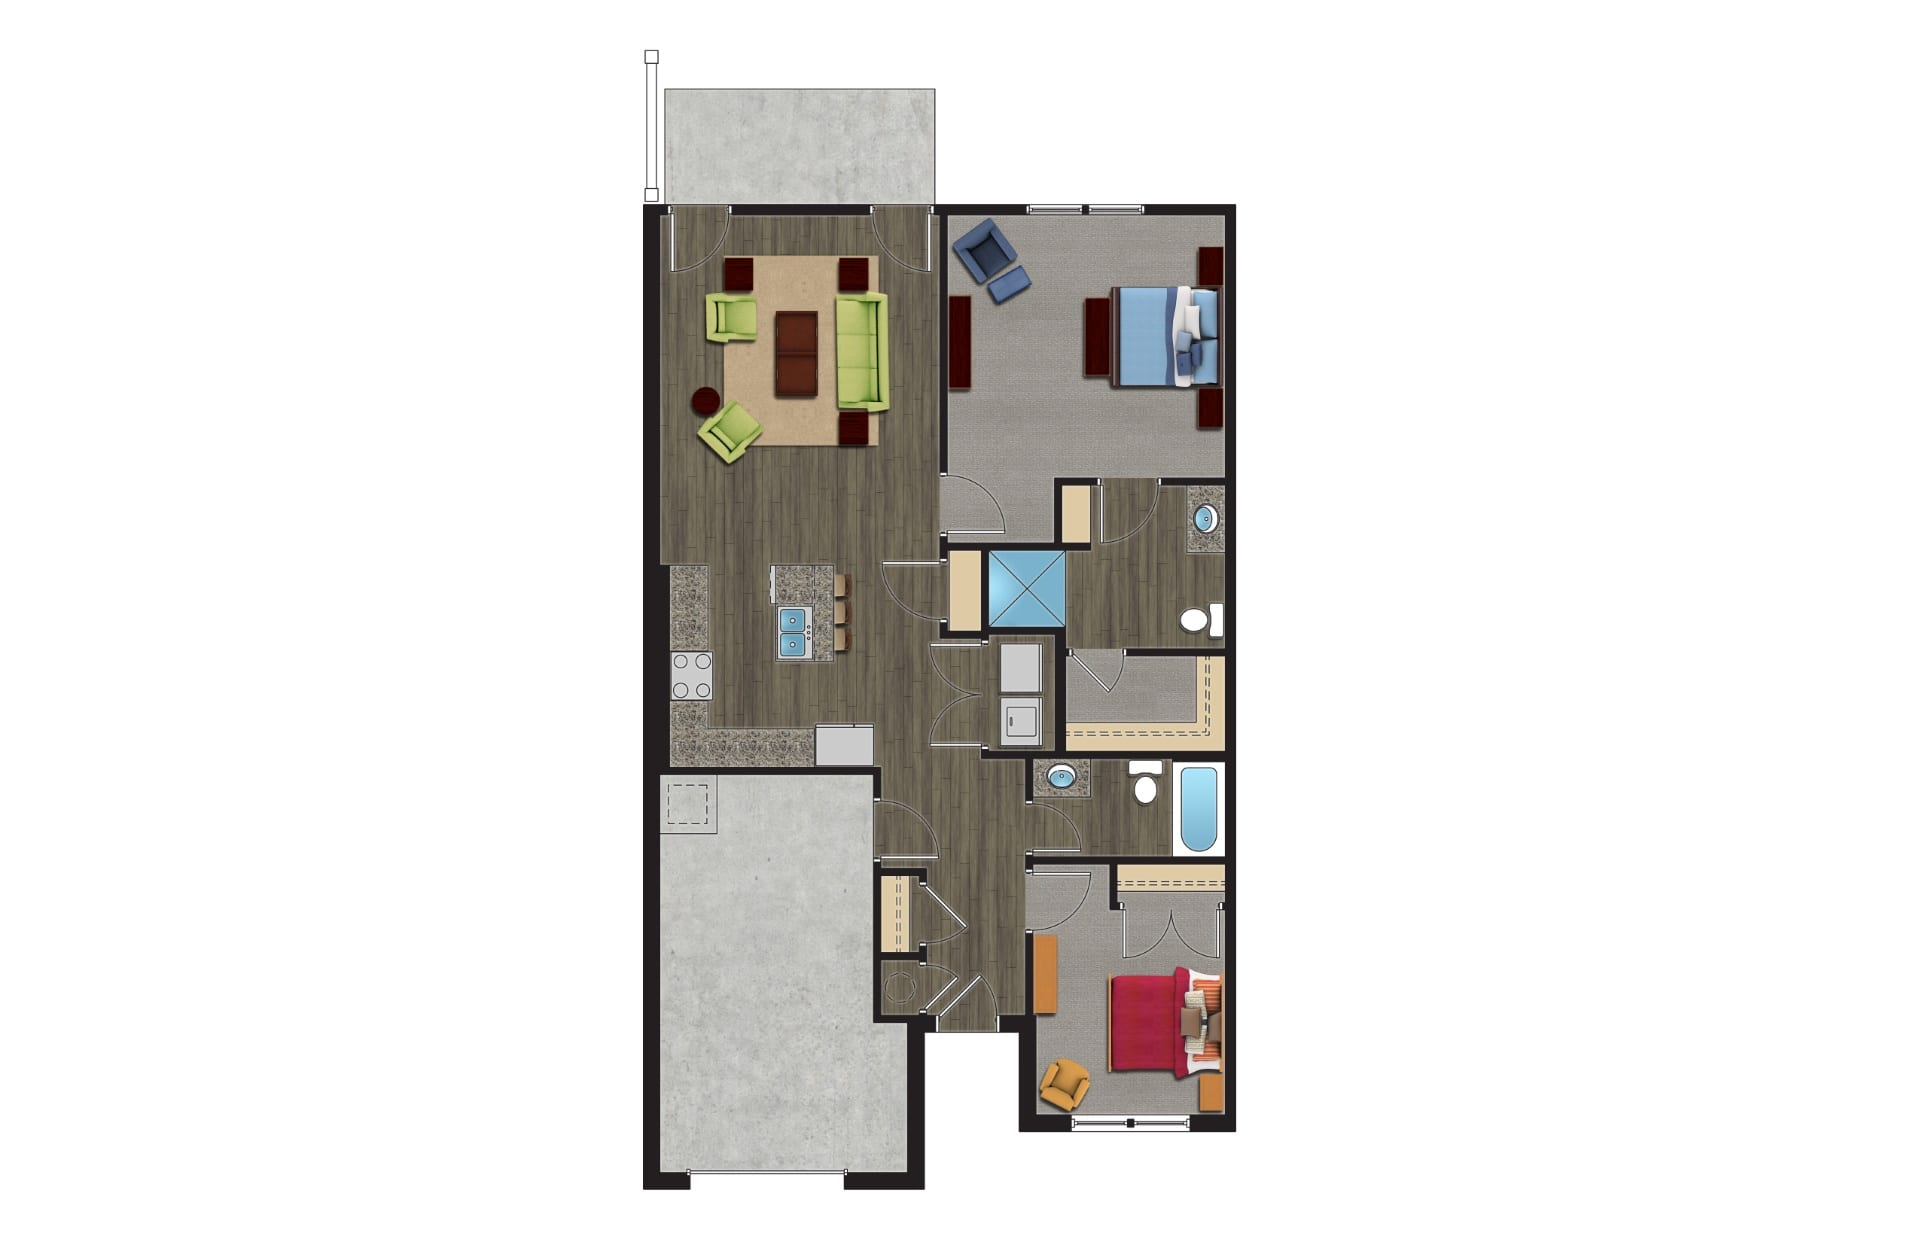 A Floor Plan of The Birch, a Luxury Townhomes with Garages for rent. The 1 Story, 2 Bedroom Townhomes in Orchard Park NY are pet friendly townhomes.